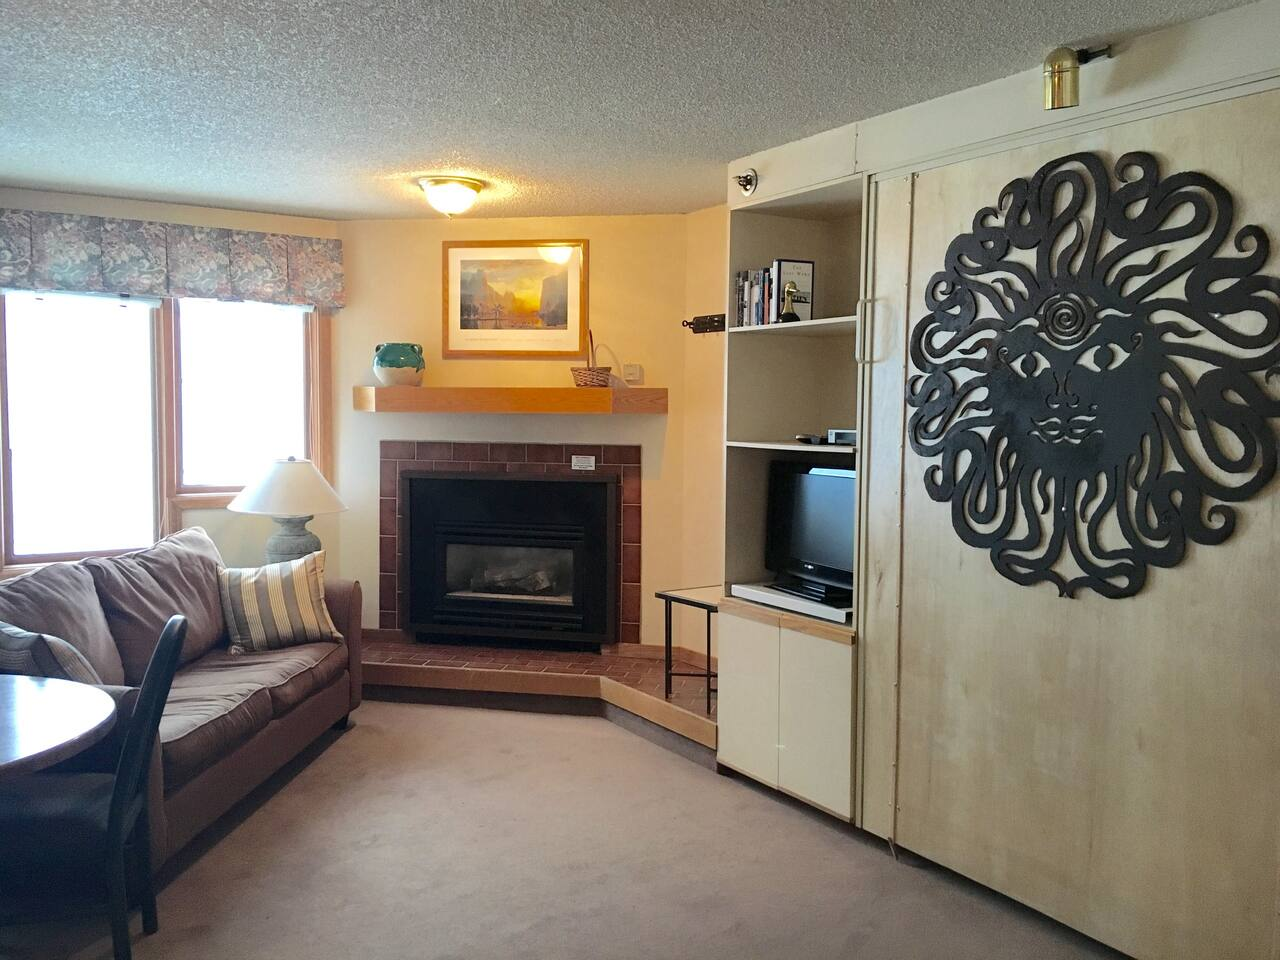 Gas fireplace provides comfy heat, metal art on murphy bed, pull out sofa